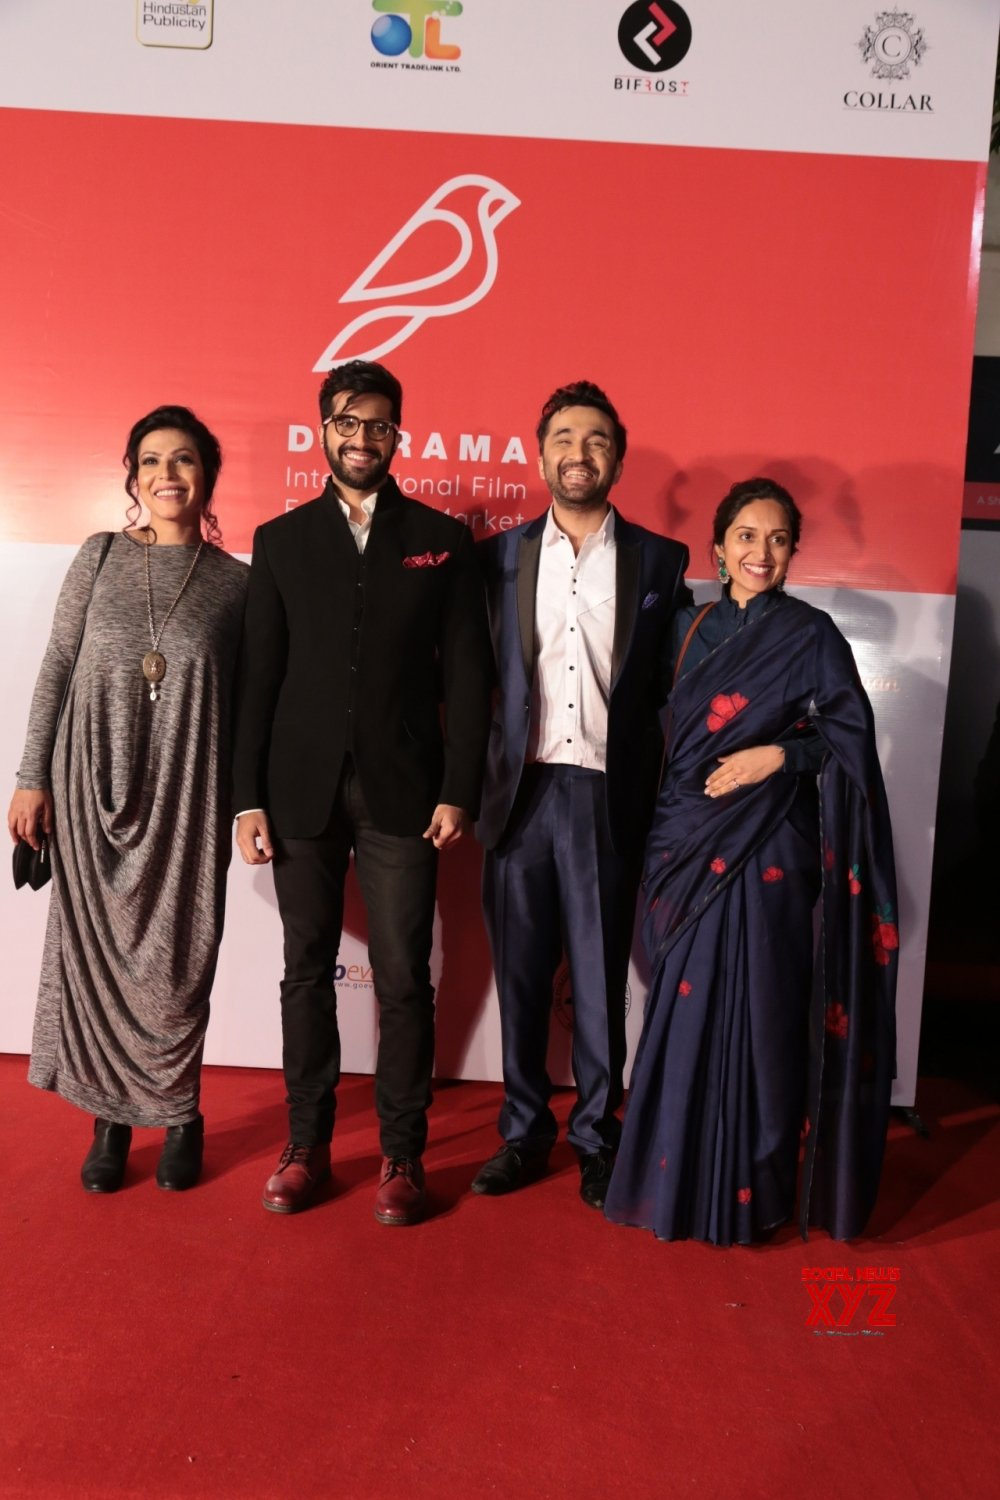 New Delhi: Diorama International Film Festival #Gallery